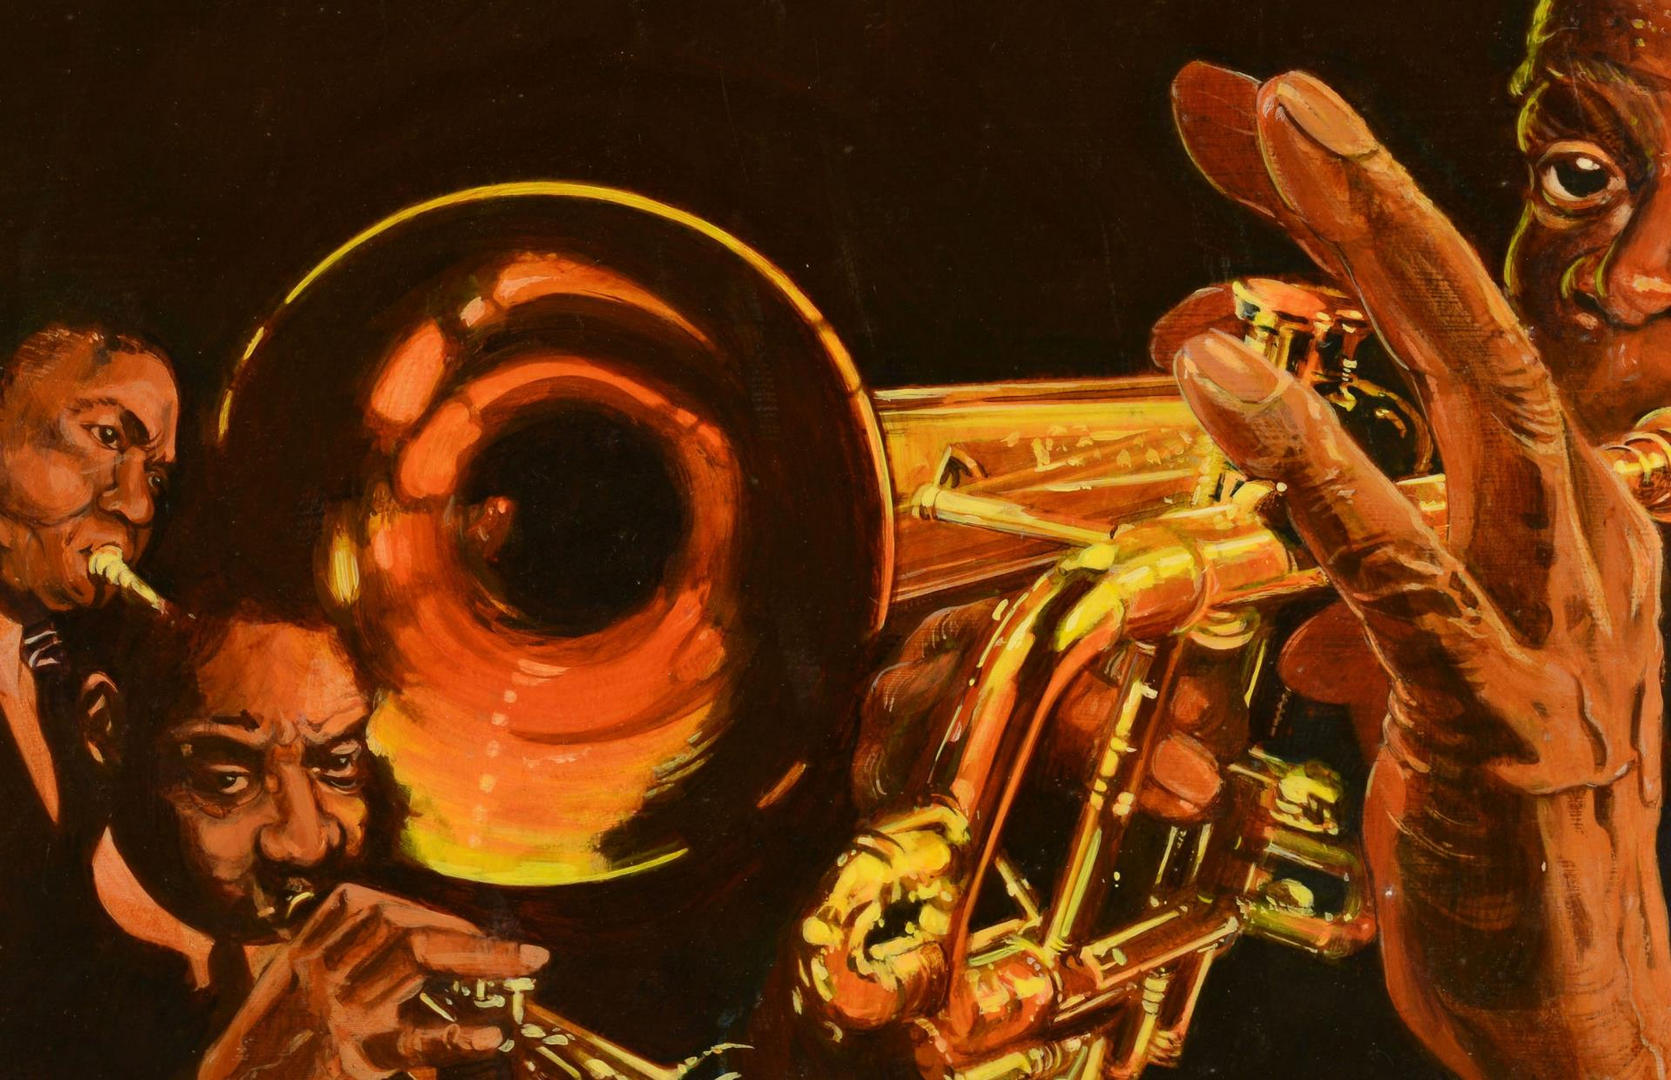 Lot 3088257: 4 Jazz Related Portraits by James Caulfield